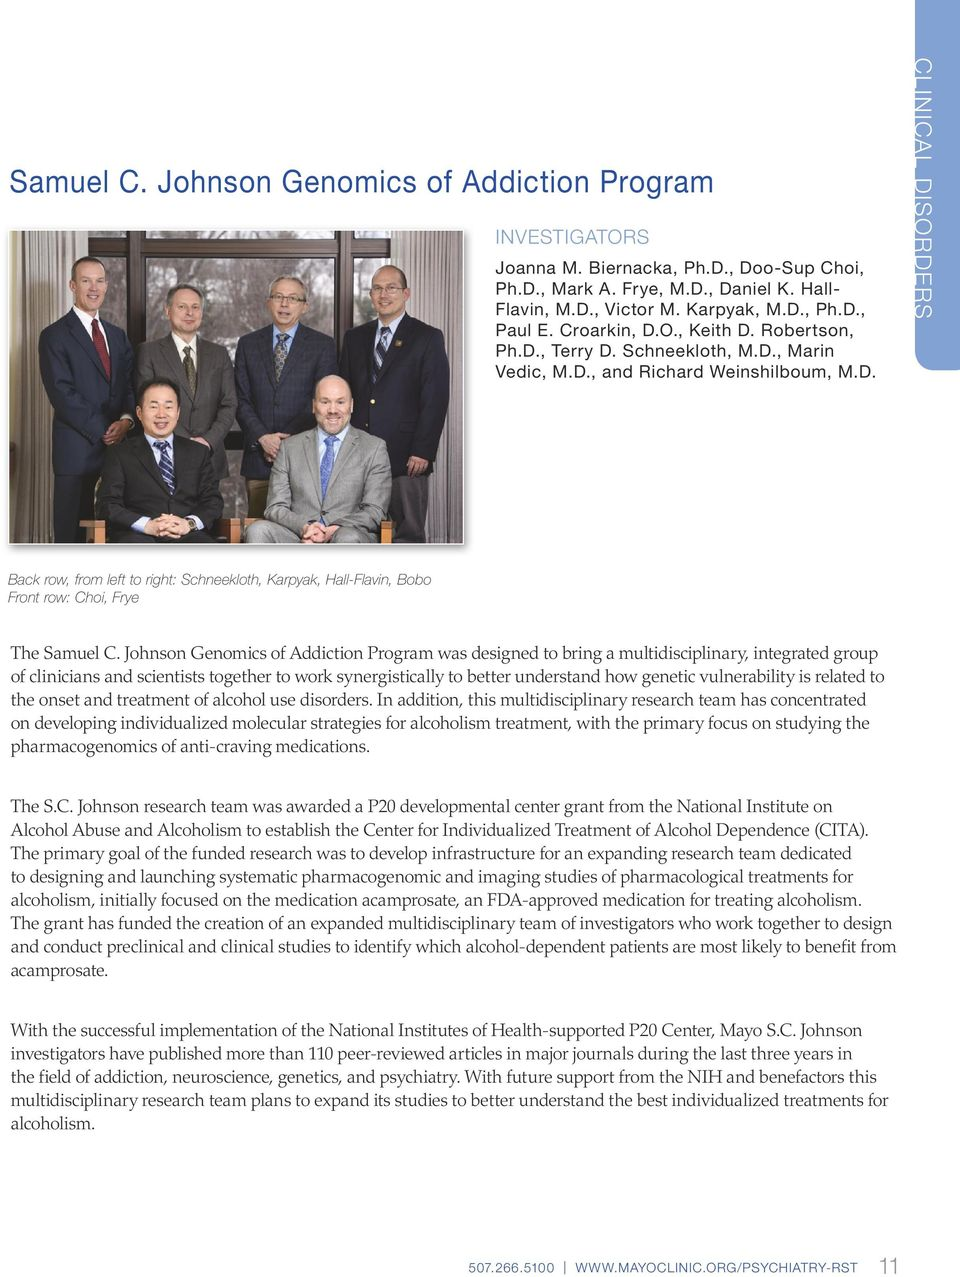 Johnson Genomics of Addiction Program was designed to bring a multidisciplinary, integrated group of clinicians and scientists together to work synergistically to better understand how genetic